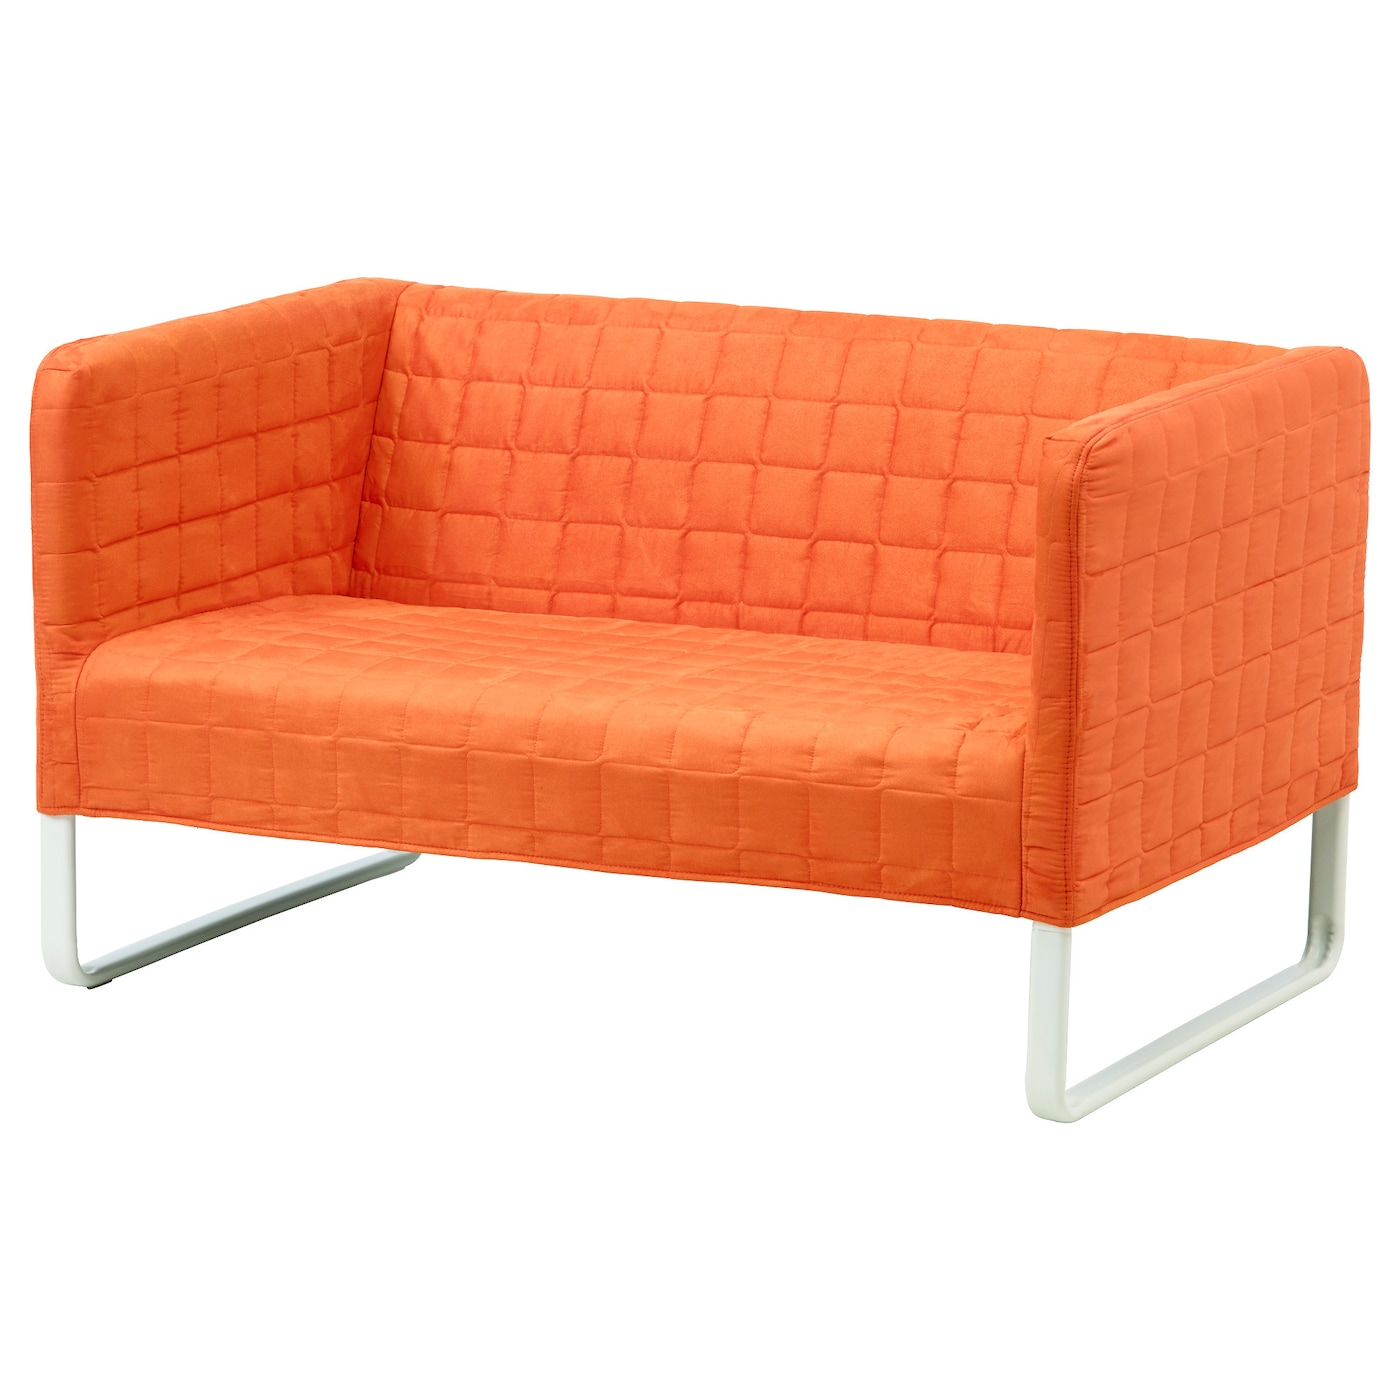 Knopparp 2 seat sofa orange ikea for Sofa exterior 120 cm